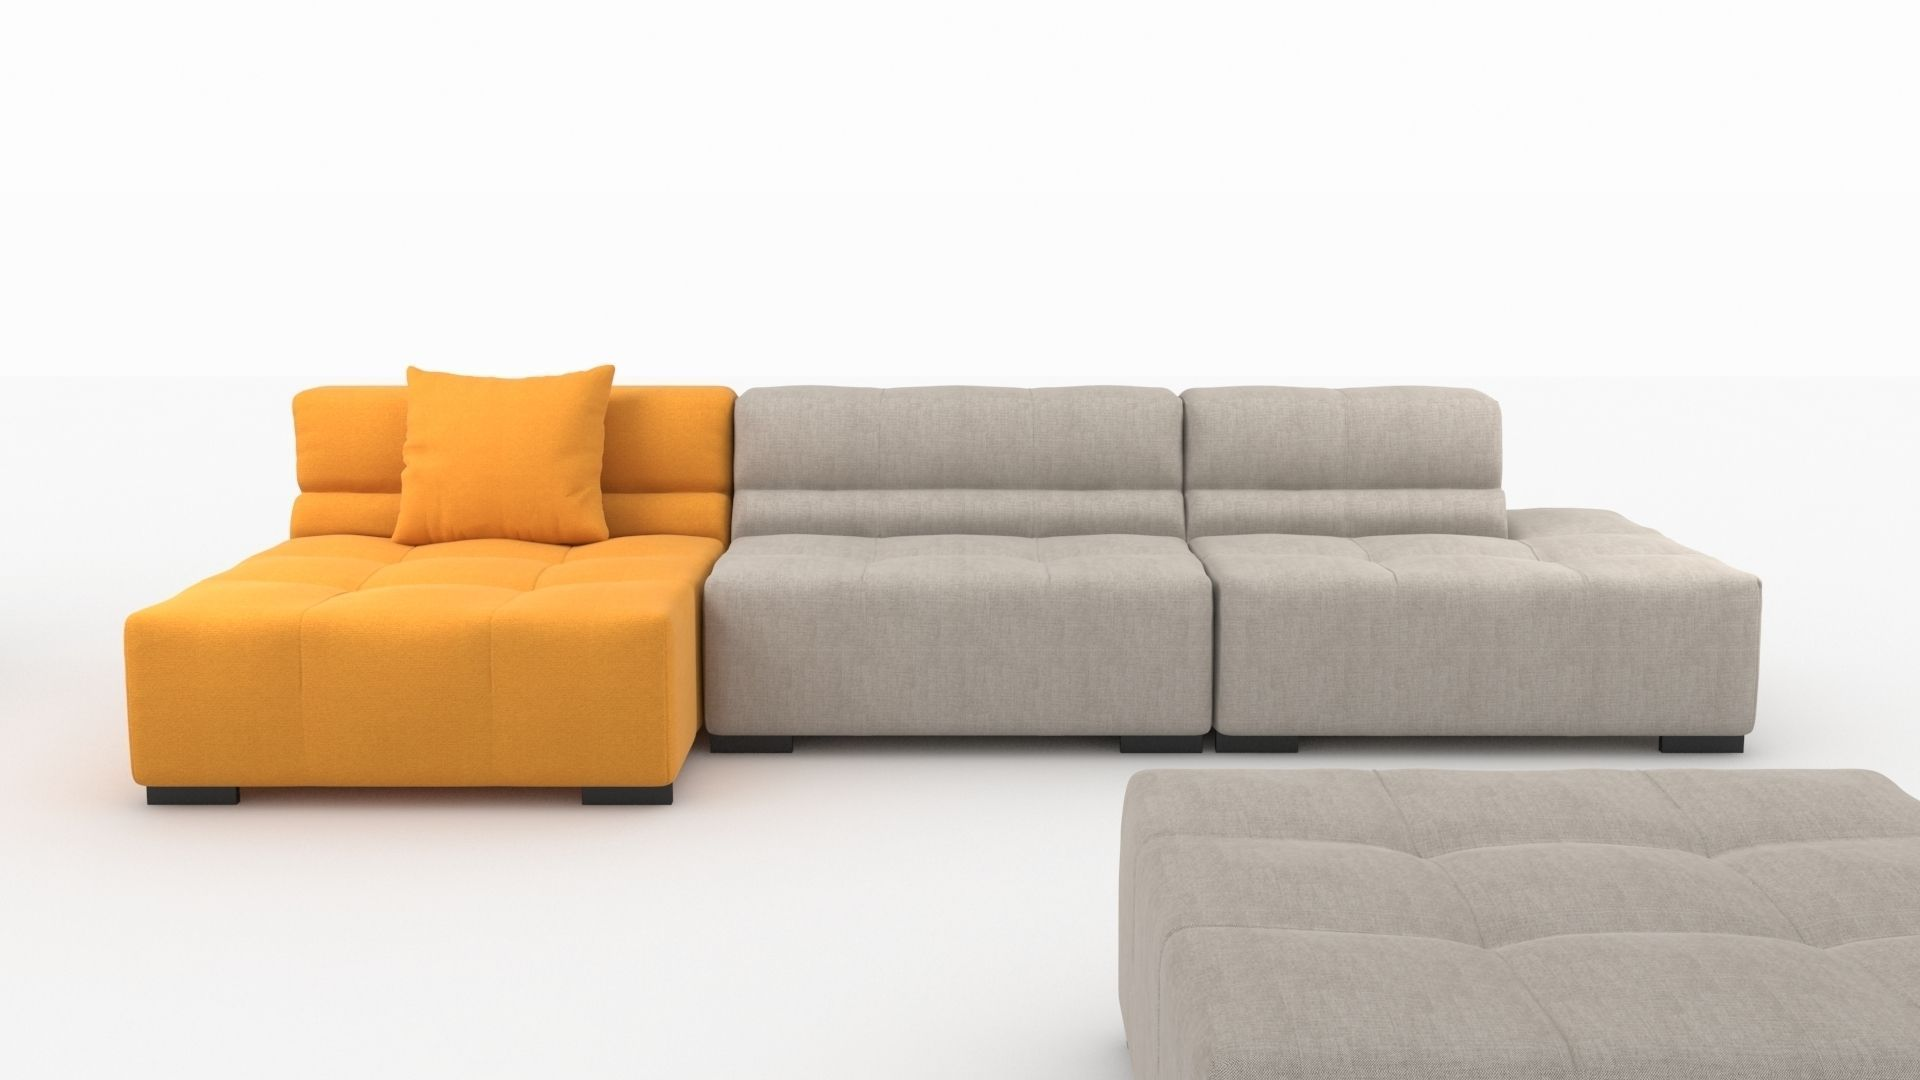 Tufty time sofa by bb italia 3d model max obj 3ds fbx mtl for Sofa bb italia